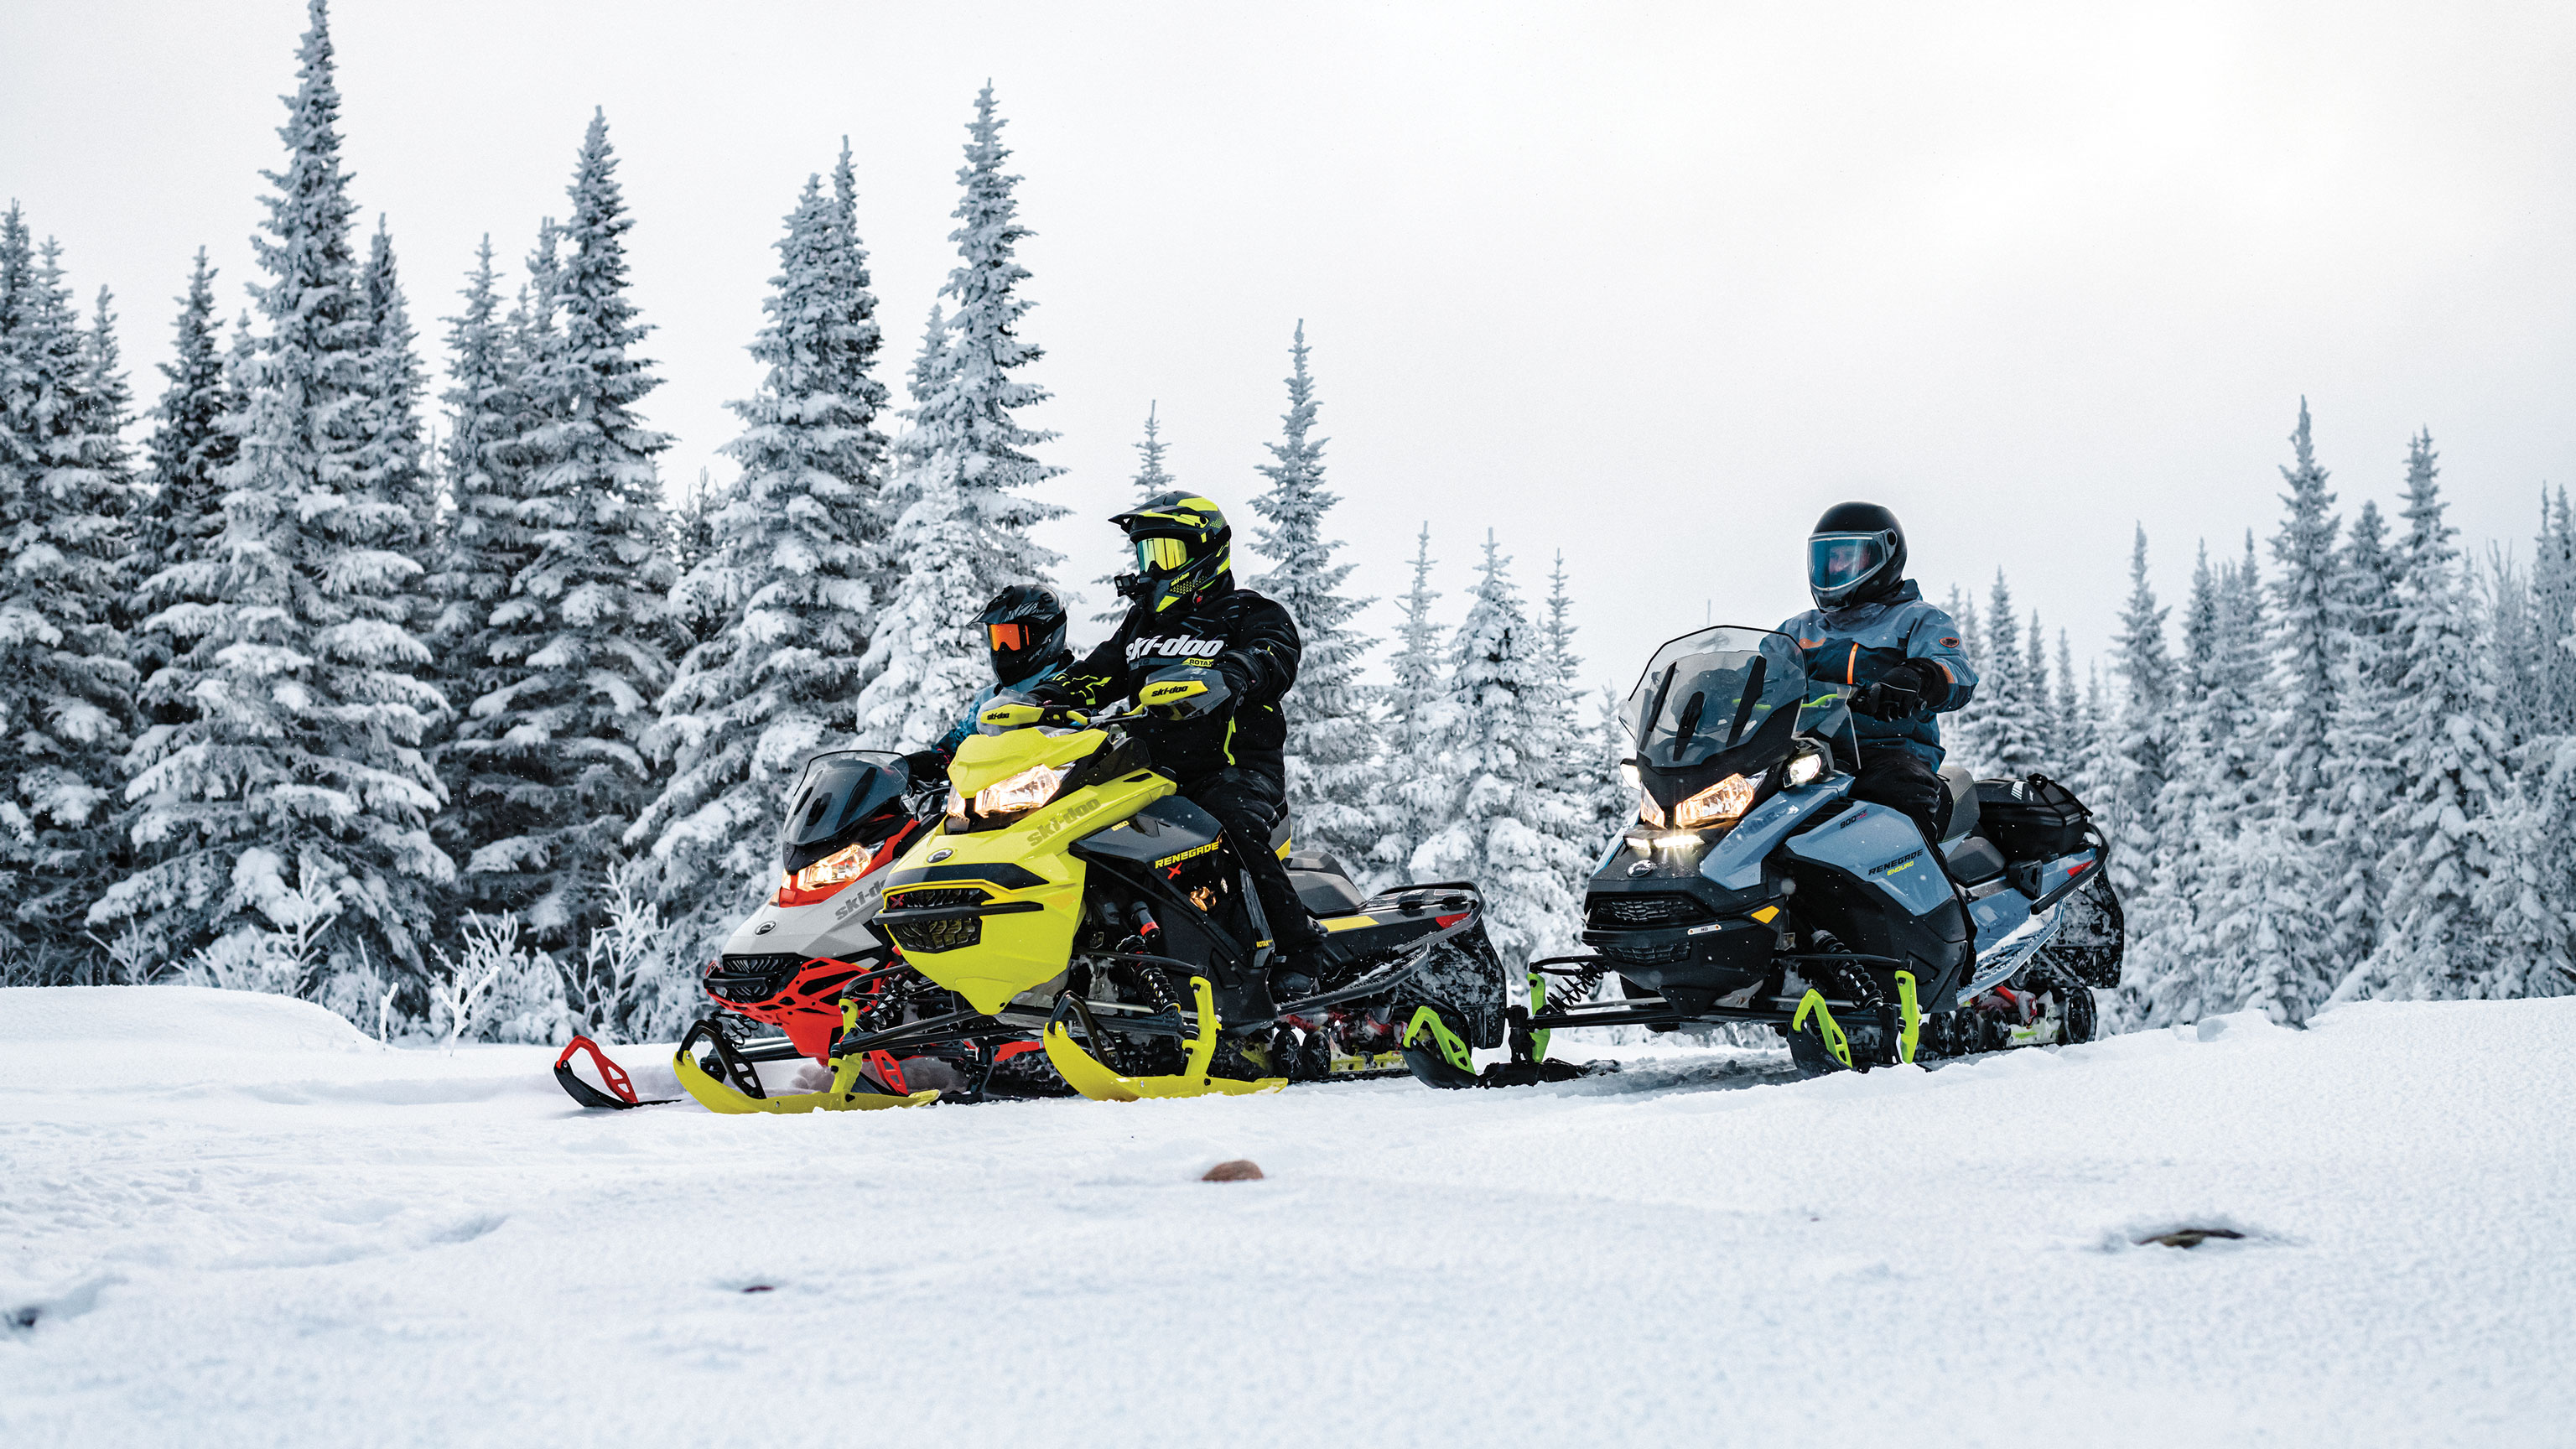 Groupe of riders on their Ski-doo Snowmobiles